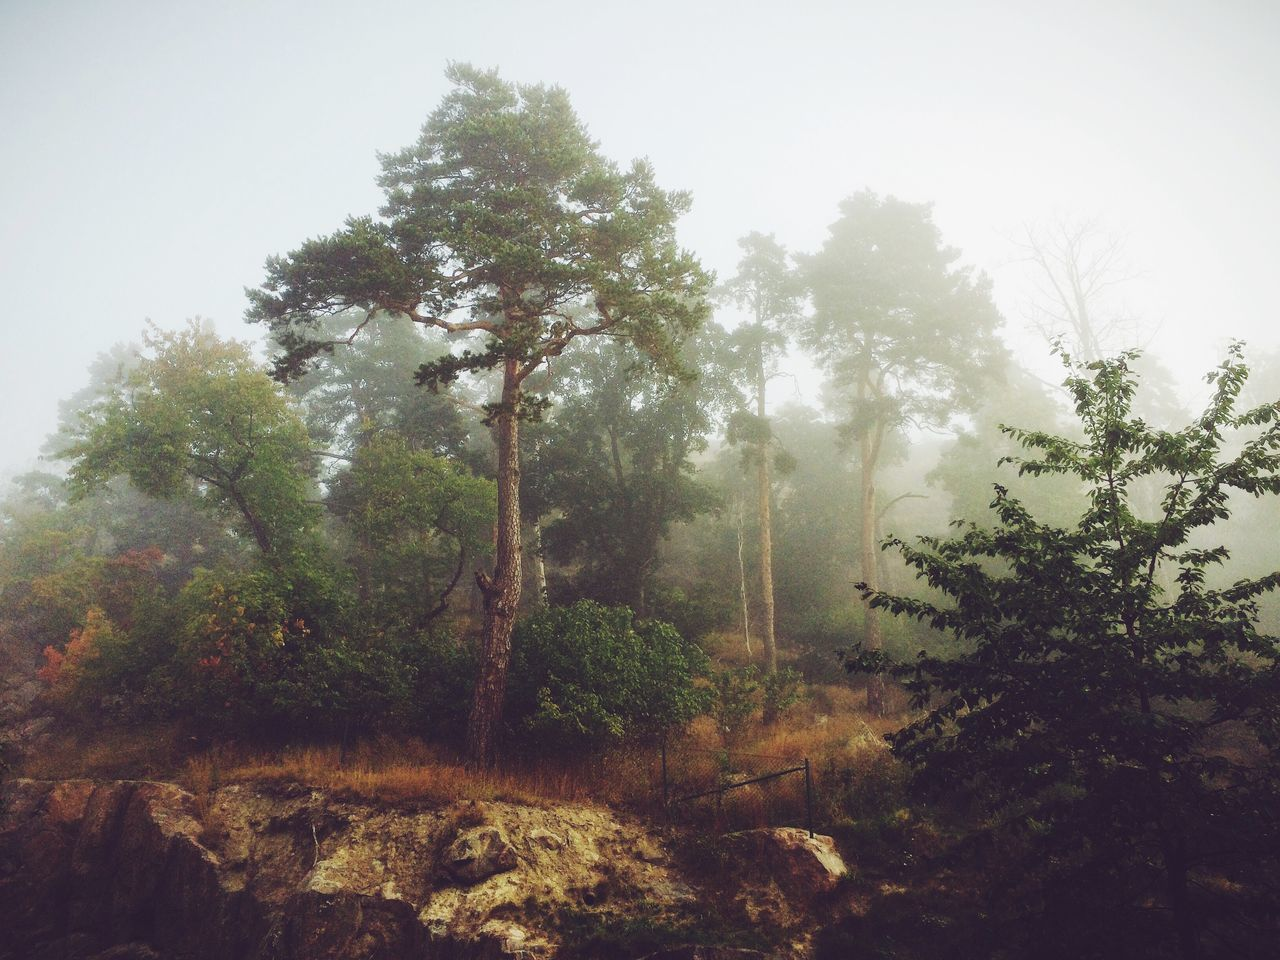 Nature On Your Doorstep The little mountain in Finnboda hamn in Nacka, Sweden. Just outside our doorstep! EyeEm Nature Lover Nature Market Bestsellers June 2016 bestsellers beauty in Nature outdoors fog nature_collection Nature photography forest woods forest photography Trees naturelovers